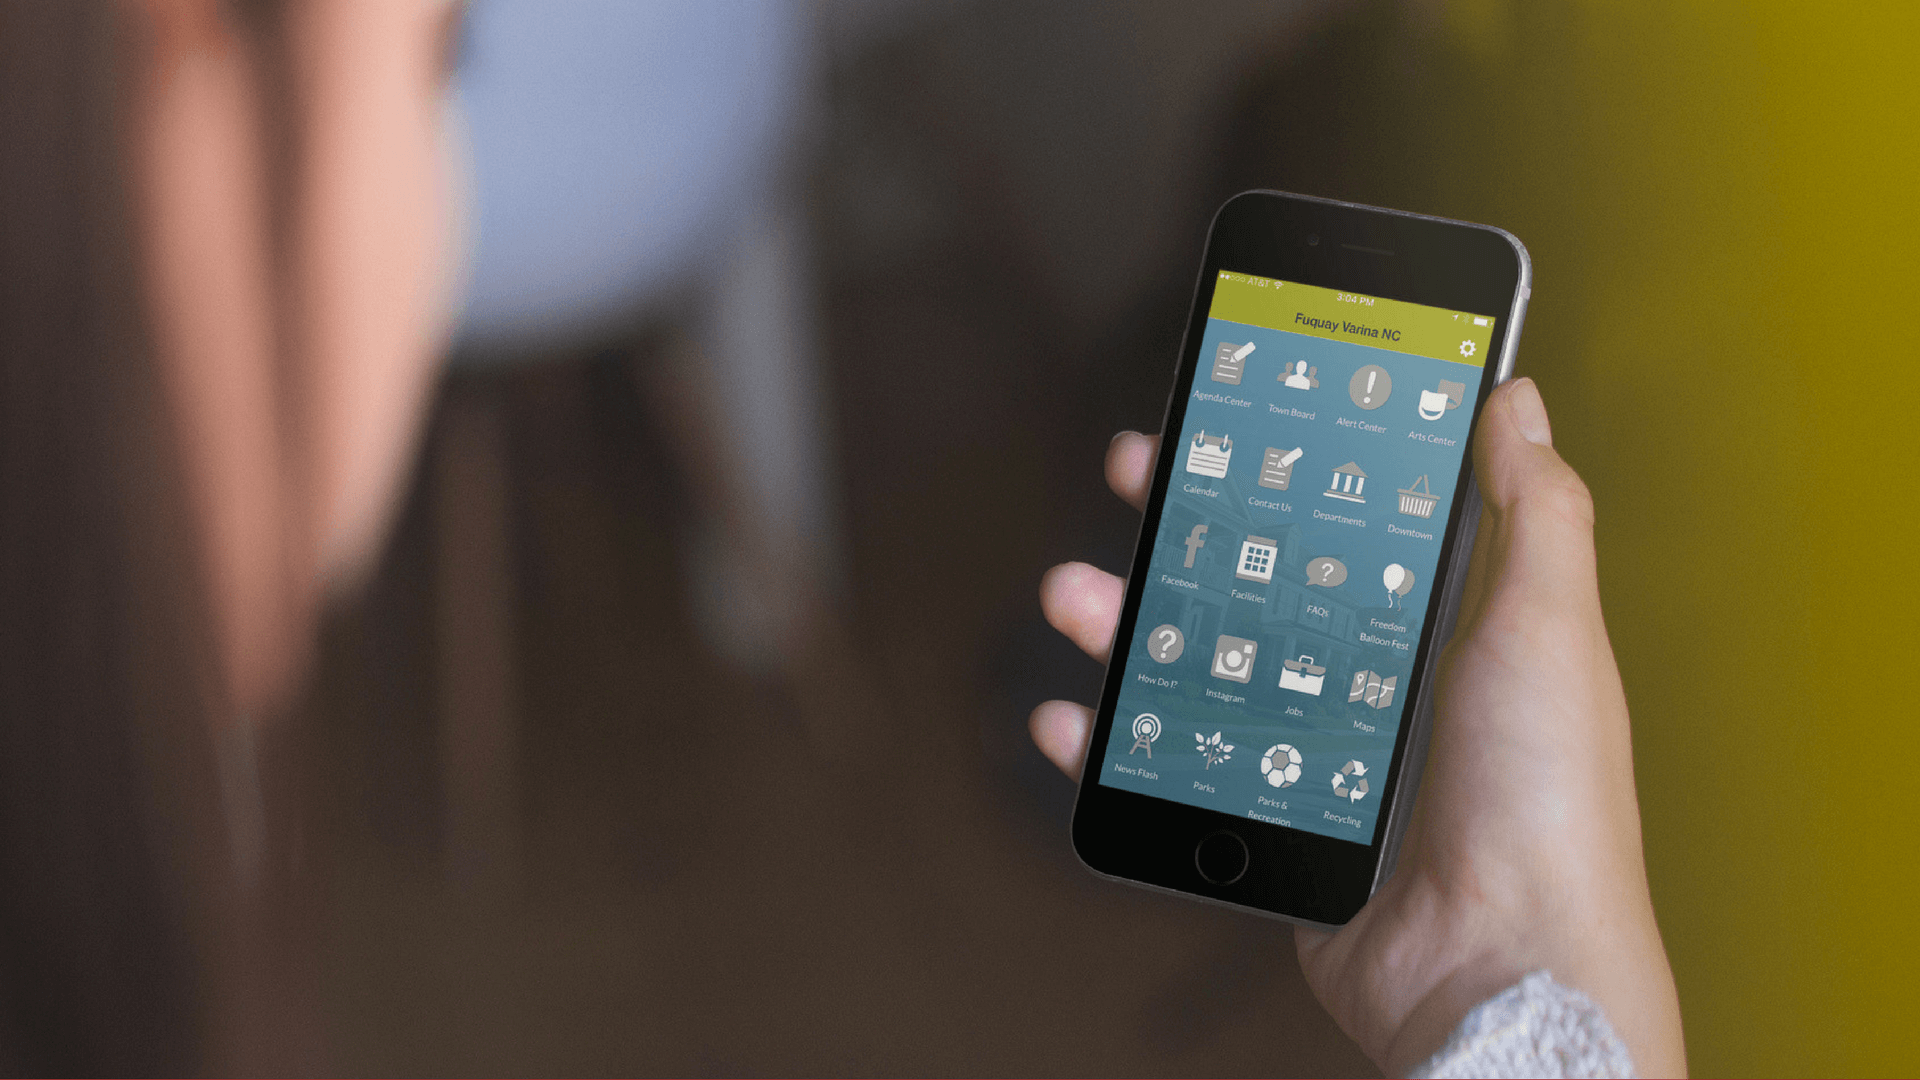 072717-Fuquay-Varina Provides Citizens with More with the CivicEngage Mobile App (1).png